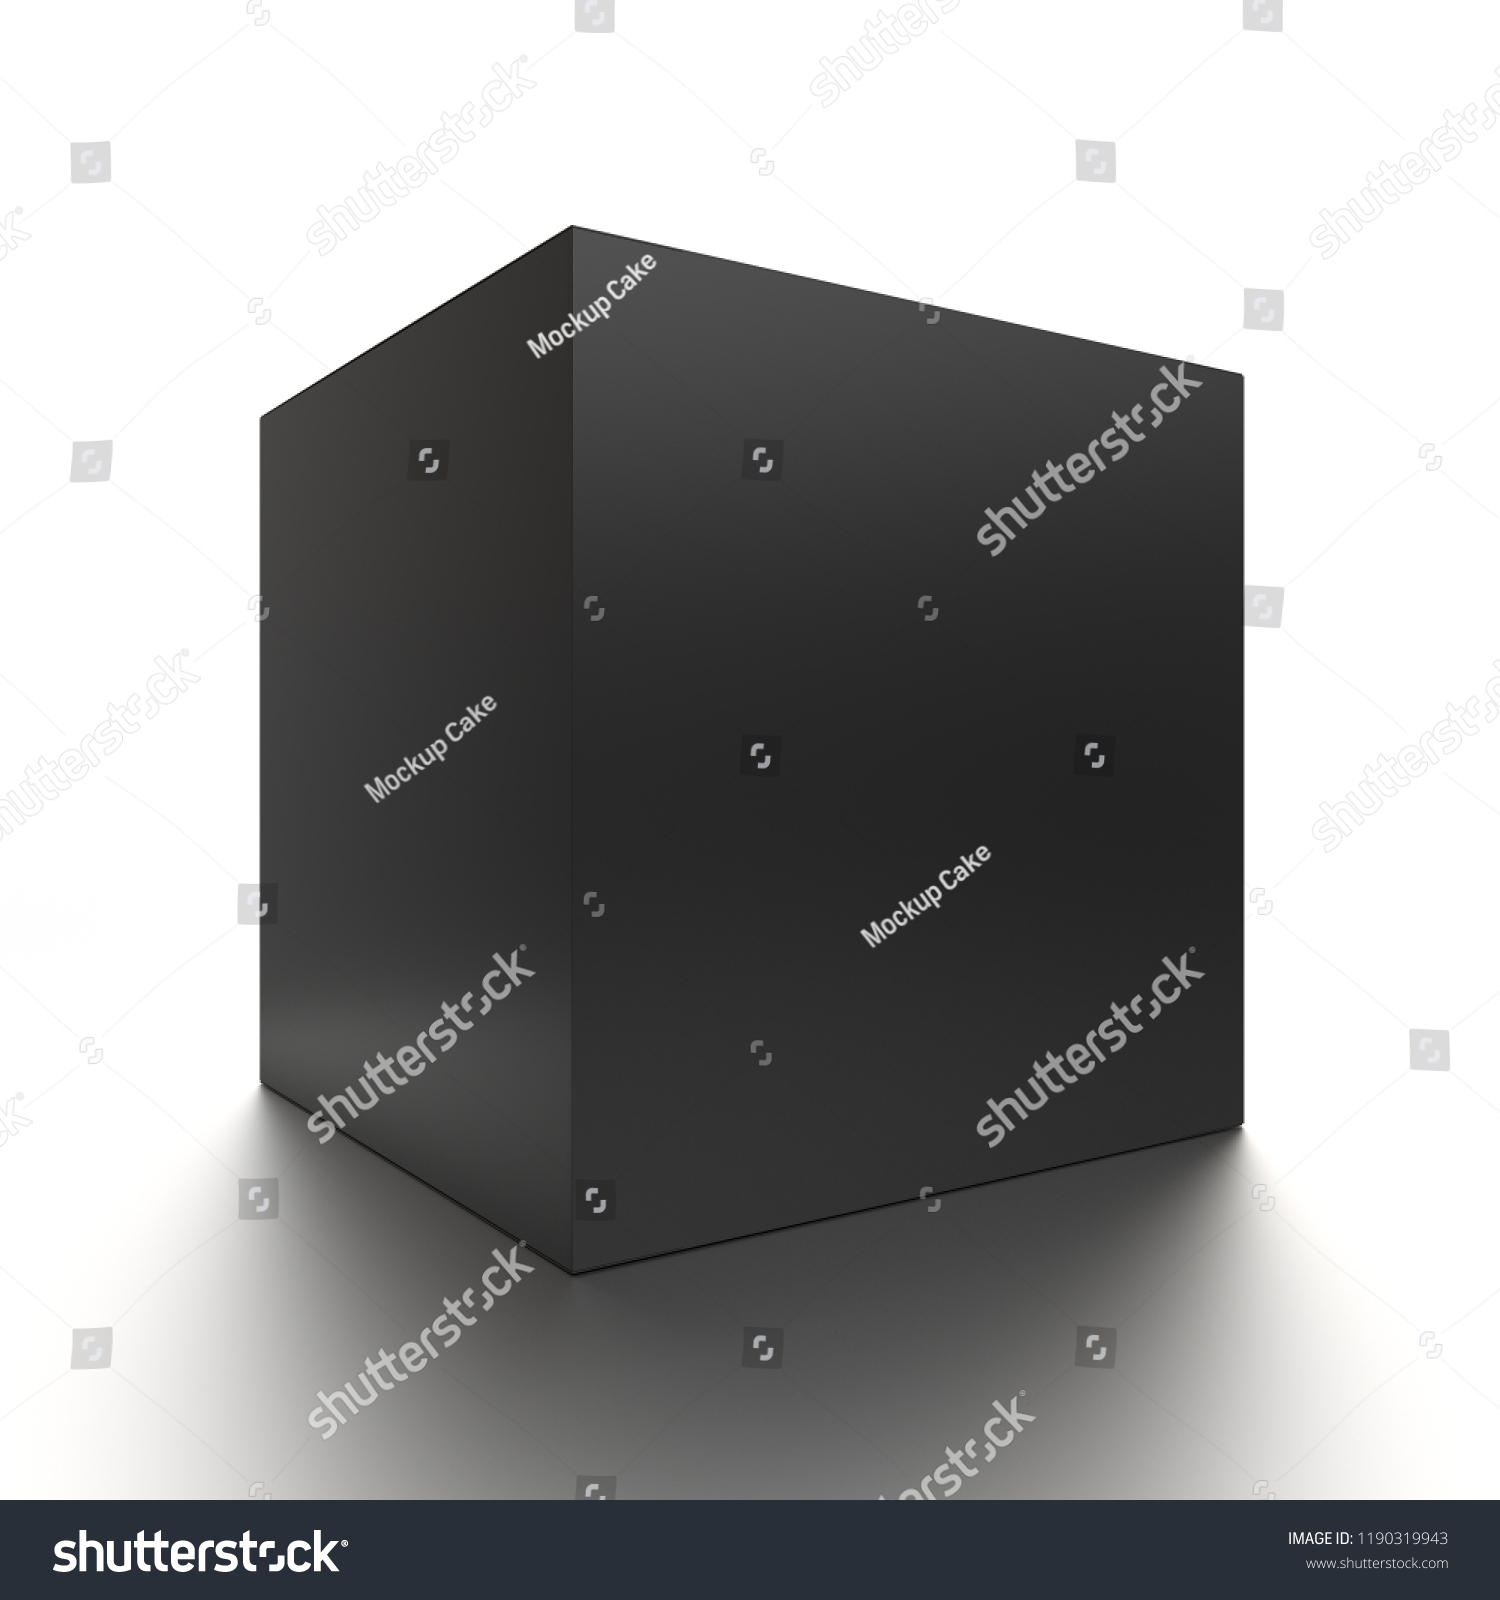 37021f5733062 Black cube blank box from front side angle. 3D illustration isolated on  white background.